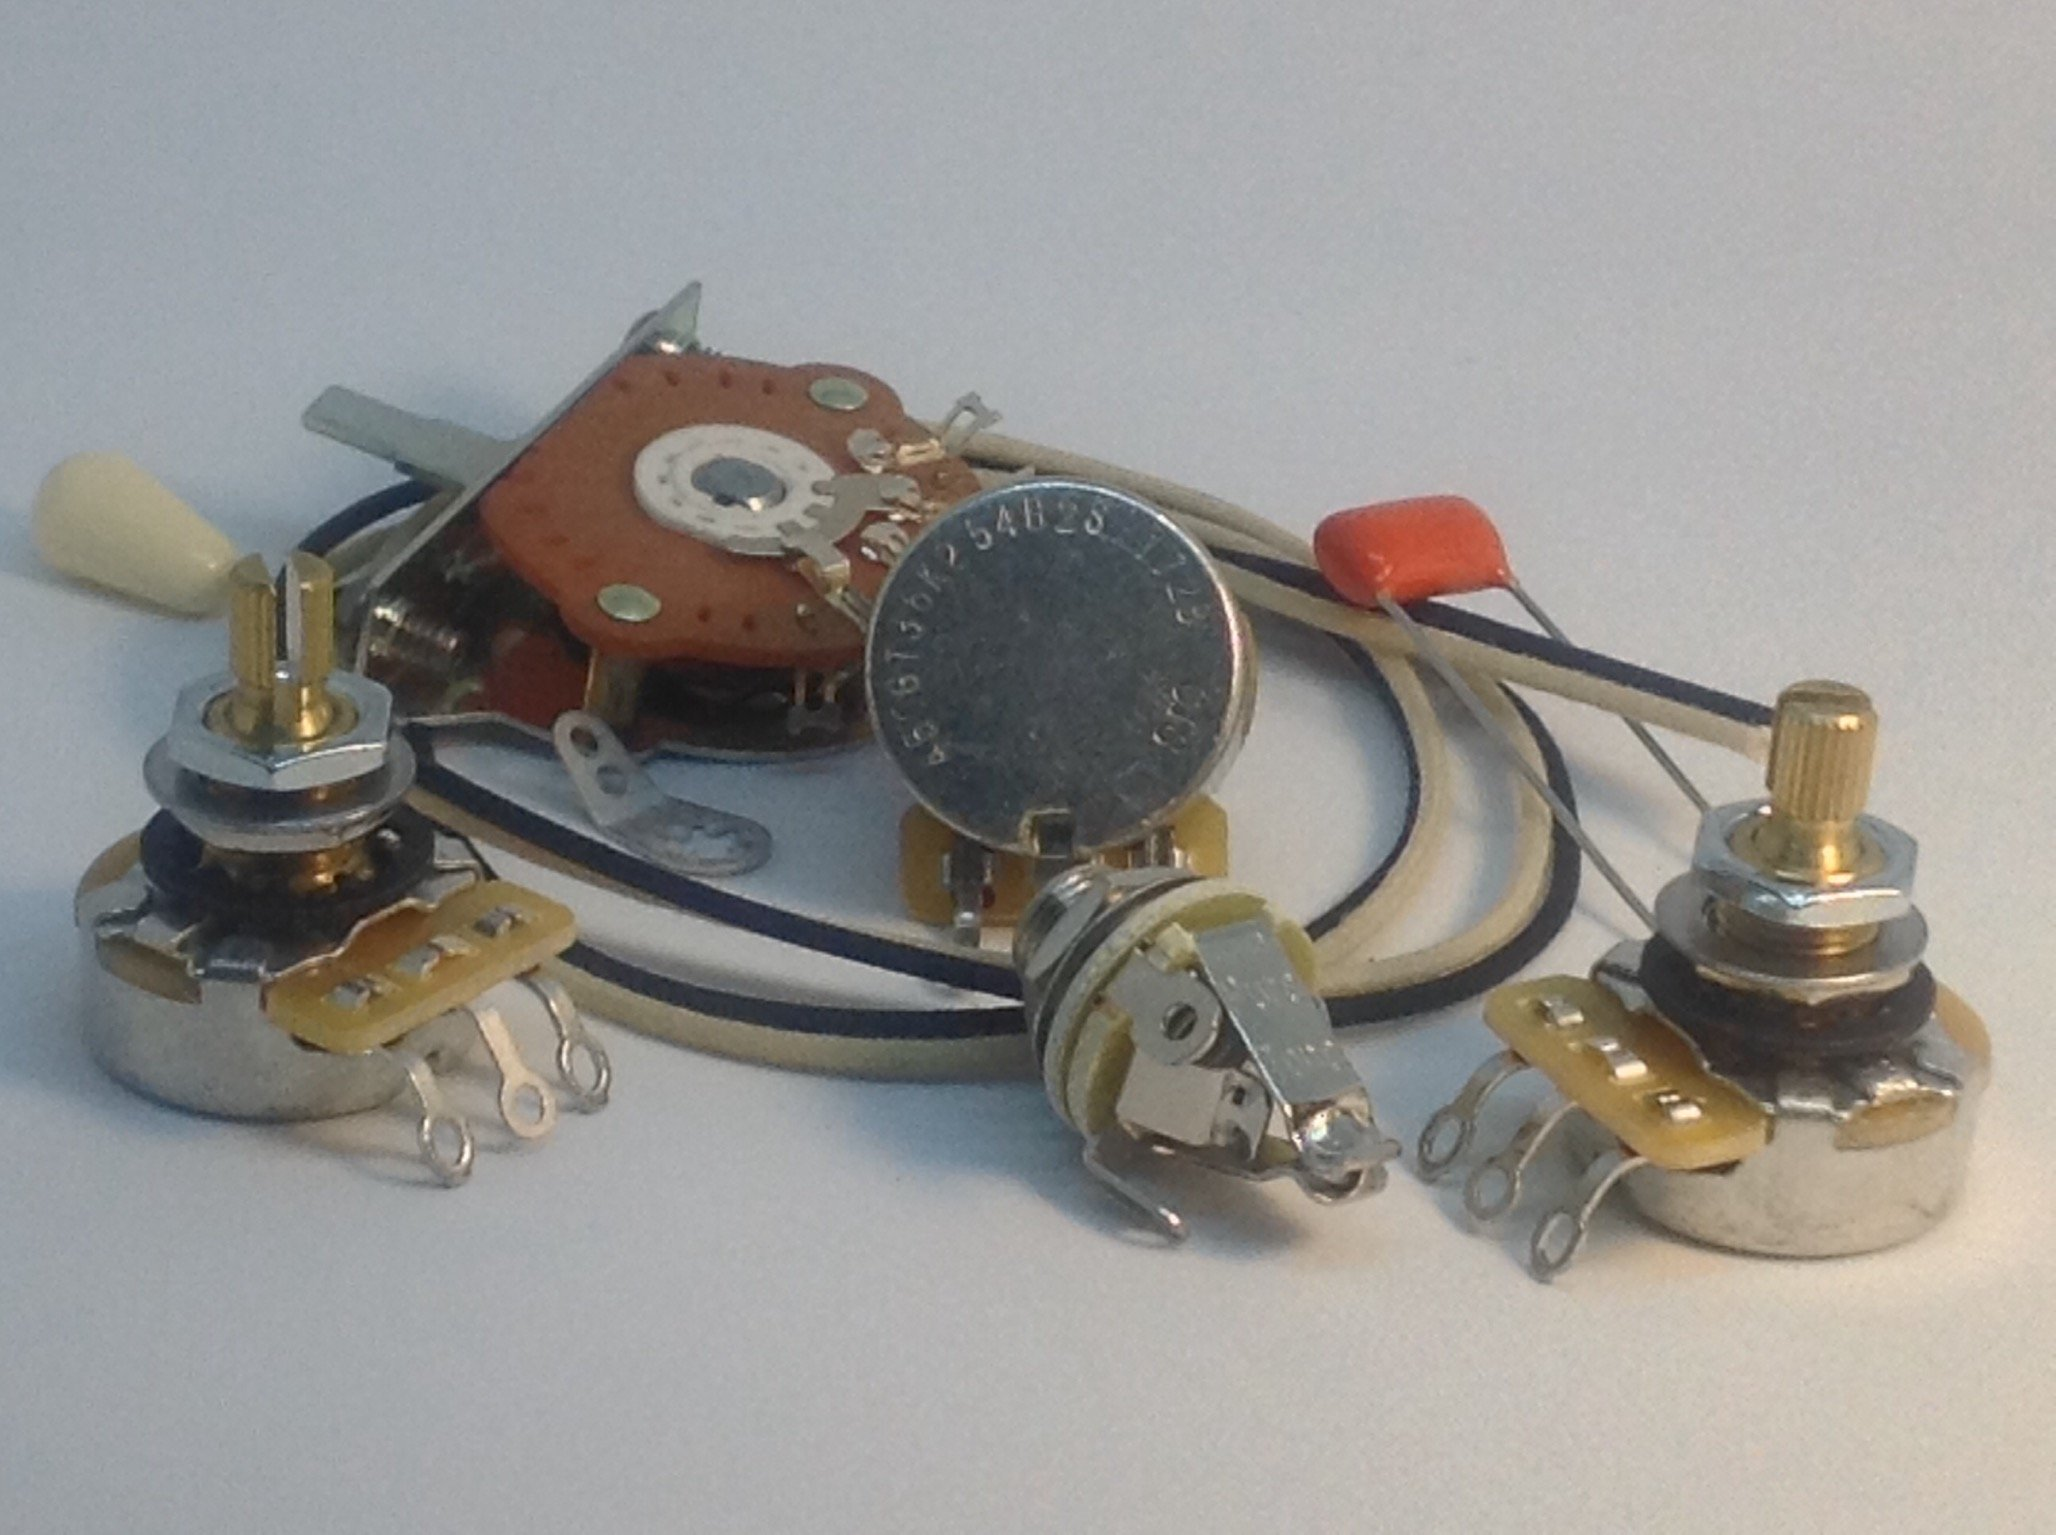 Stratocaster Wiring Kit CTS 450G Oak Switch .047uf 716P Small Orange Drop Pure Tone Full-contact Output Jack